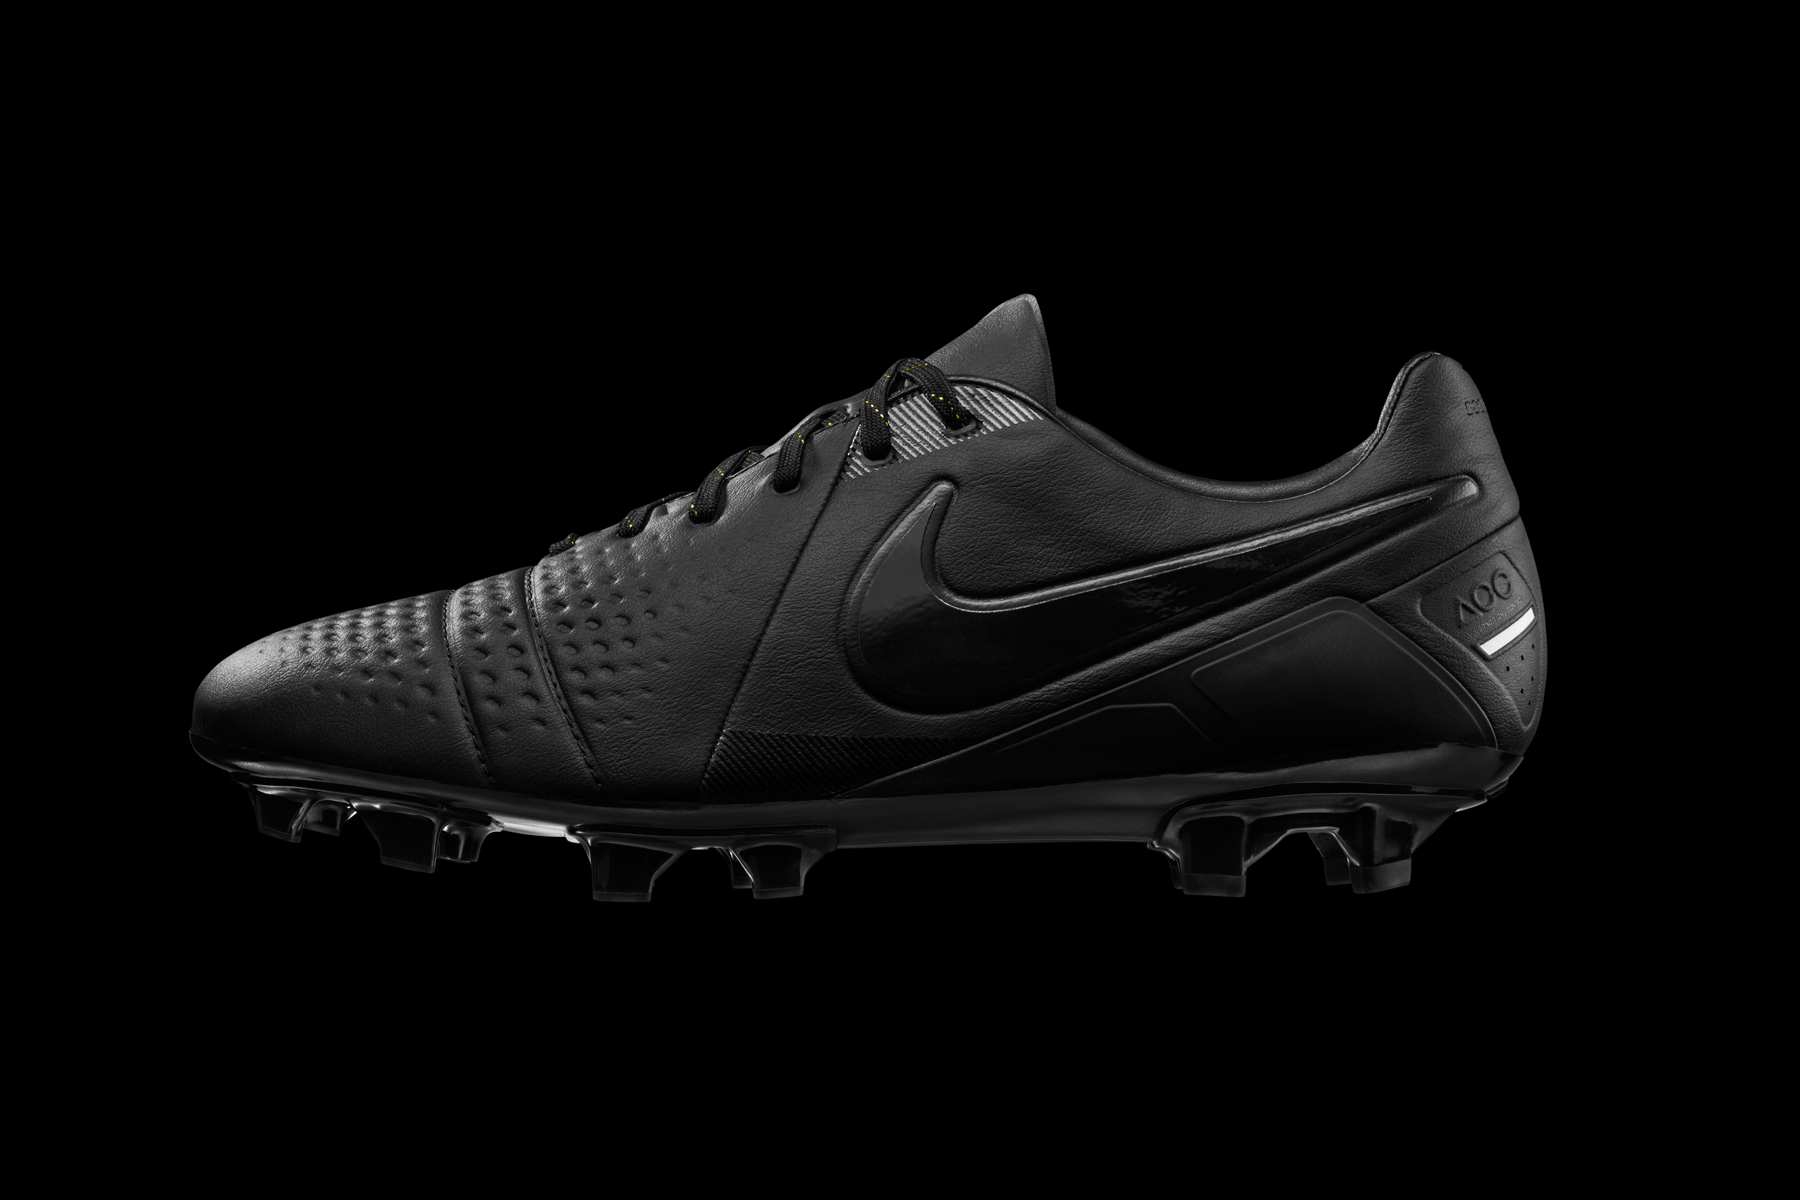 """Nike CTR 360 Limited Edition """"Lights Out"""""""